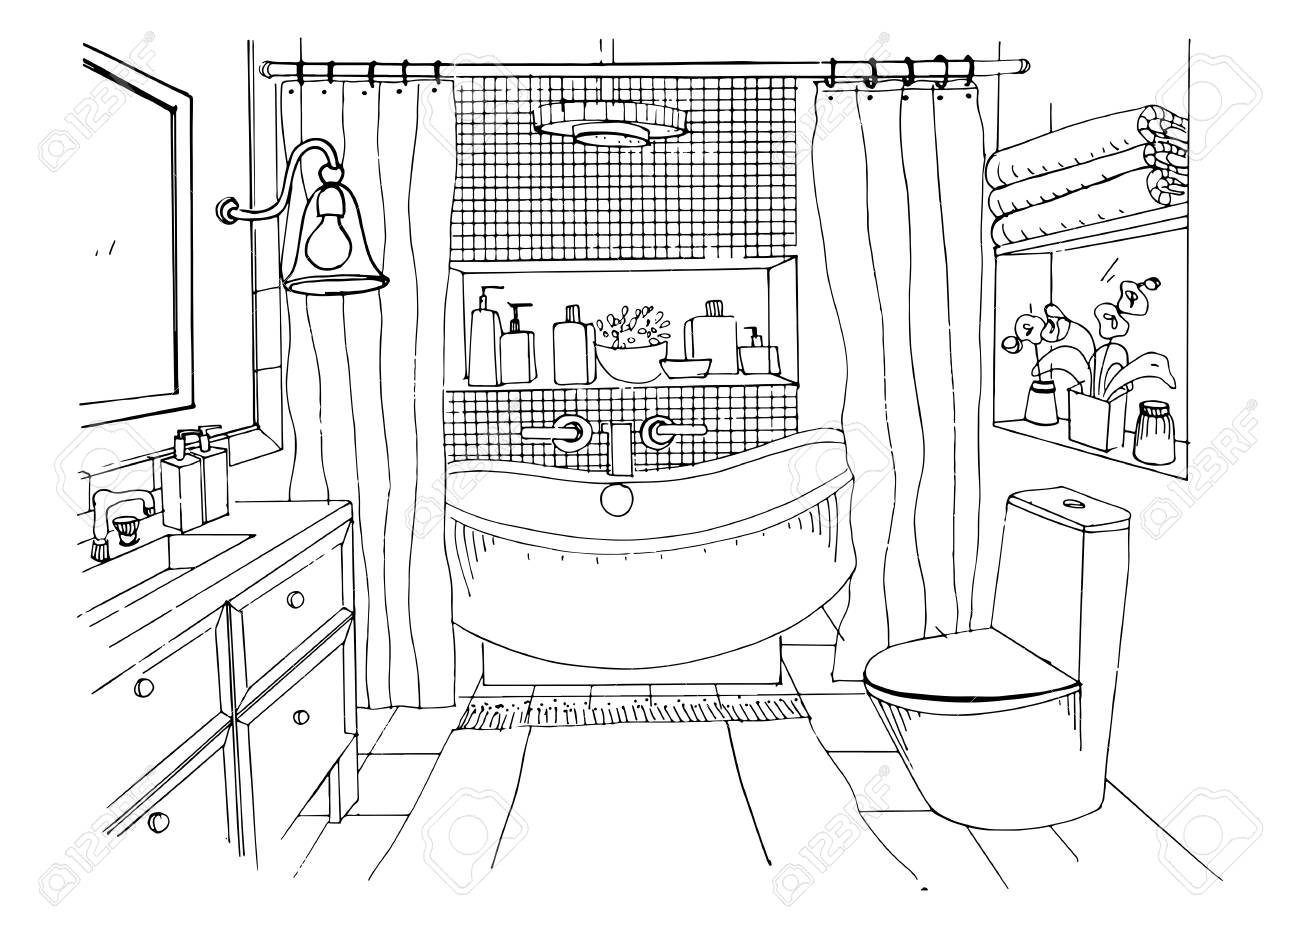 Hand drawn modern bathroom interior design, Vector sketch illustration.